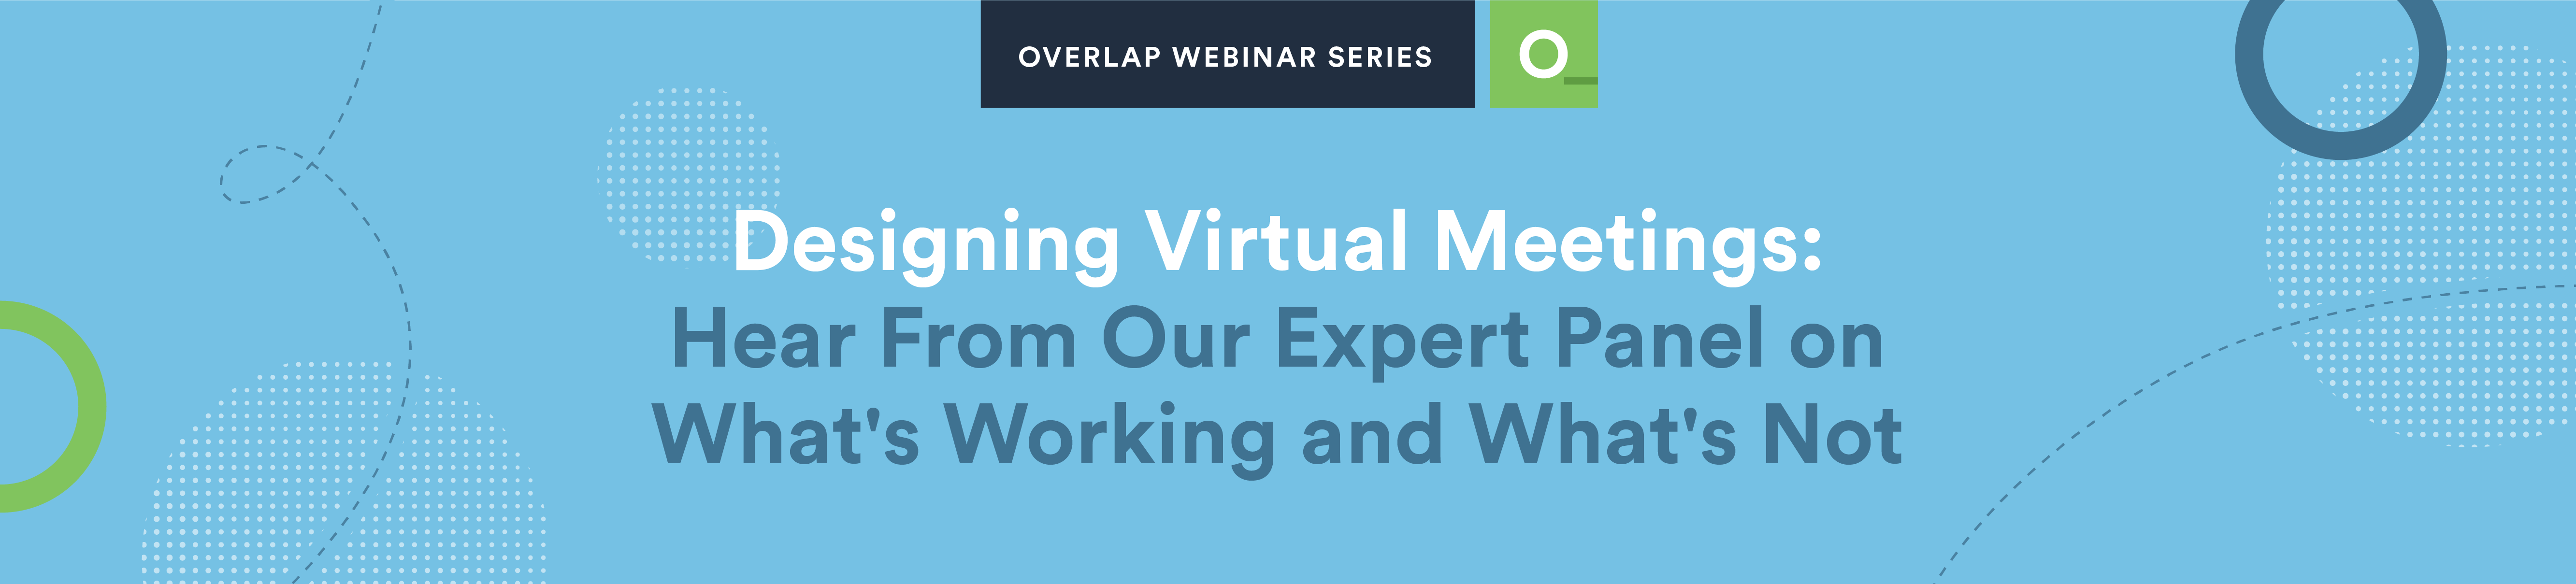 Designing Virtual Meetings: Hear from our expert panel on what's working and what's not